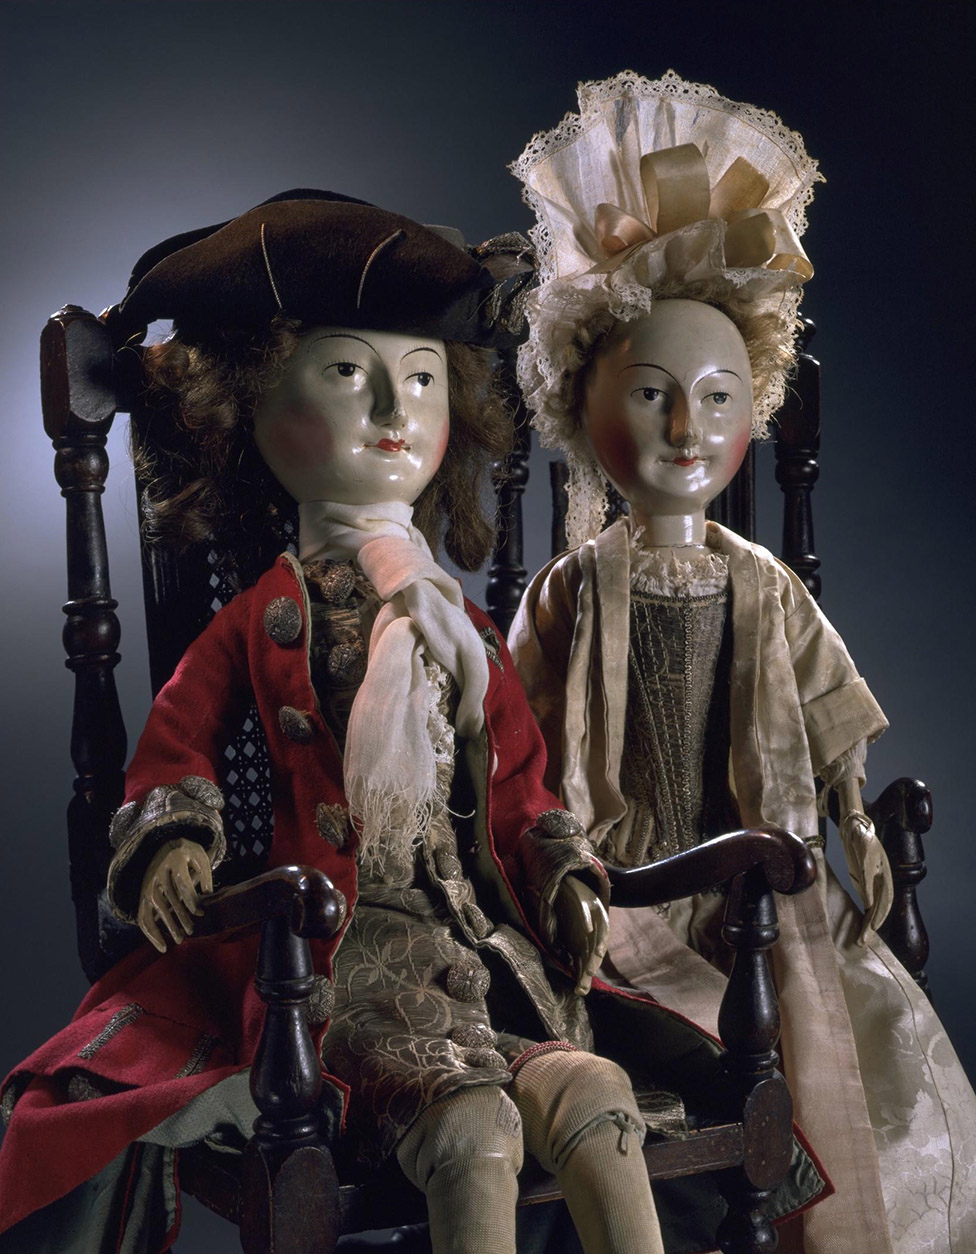 Lady Clapham. Muñeca. Hacia 1690. 1700. Victoria and Albert Museum. Londres.